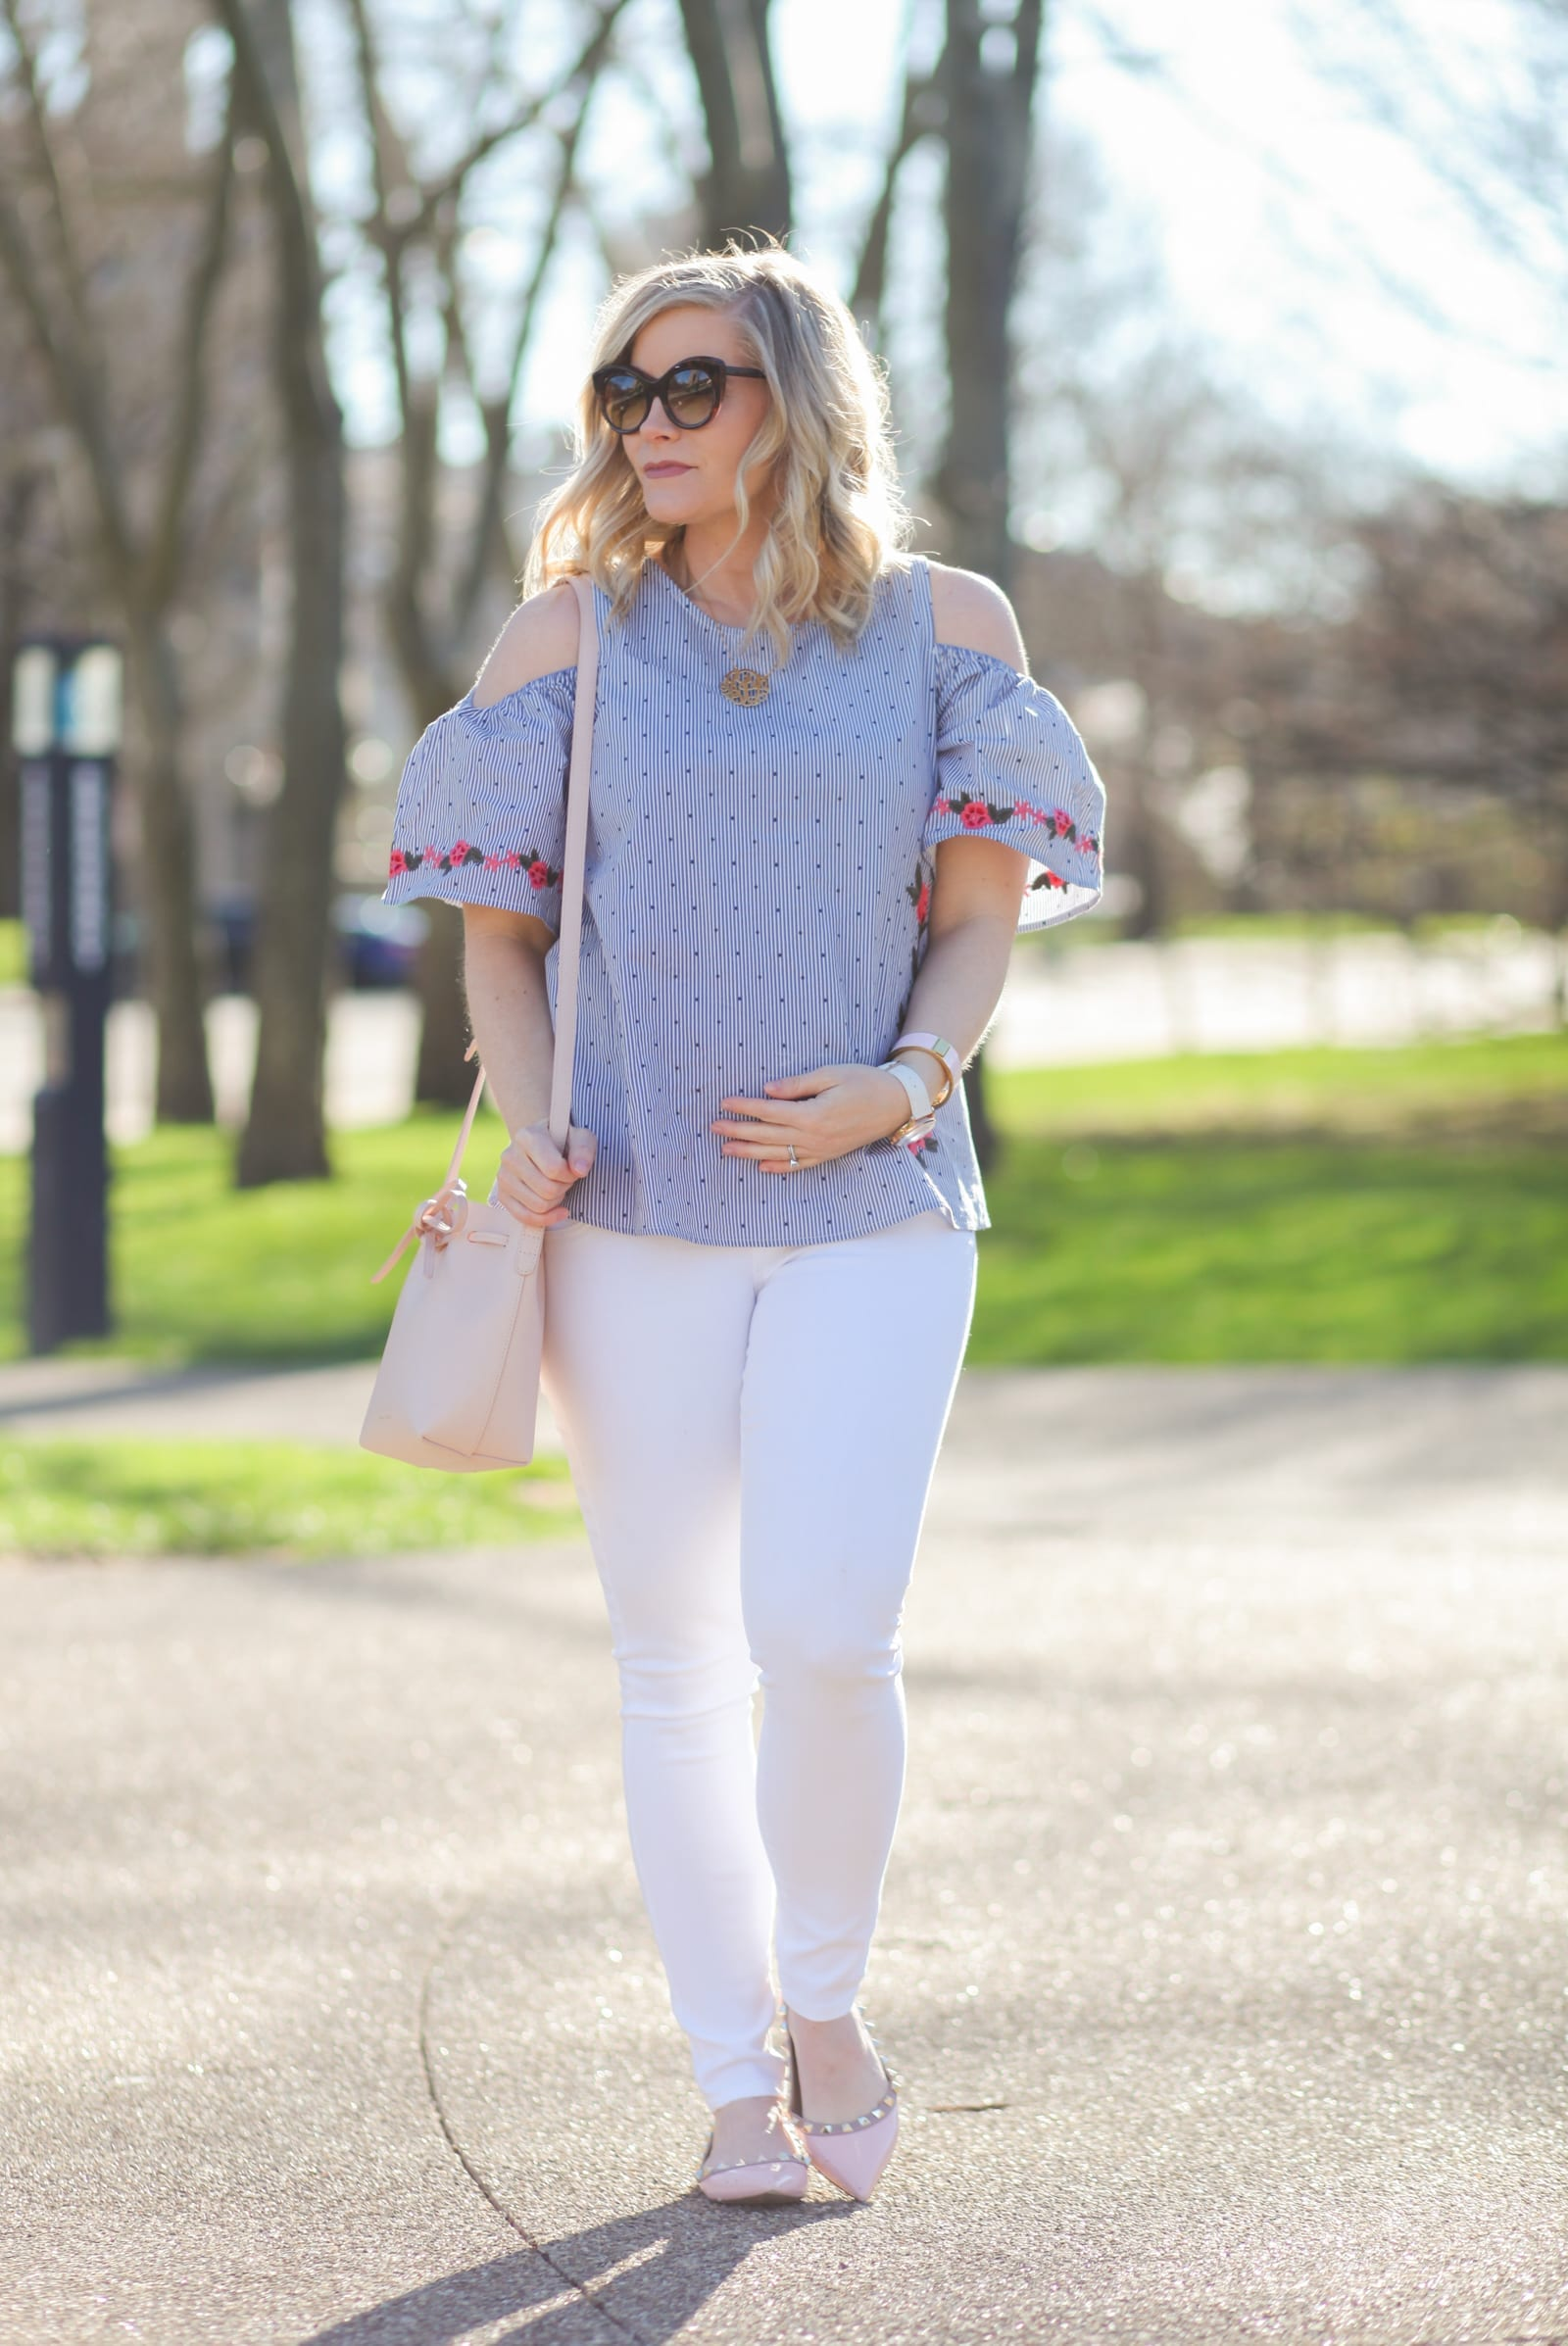 Trending this Spring and Summer: Francesca's Embroidered Blouse